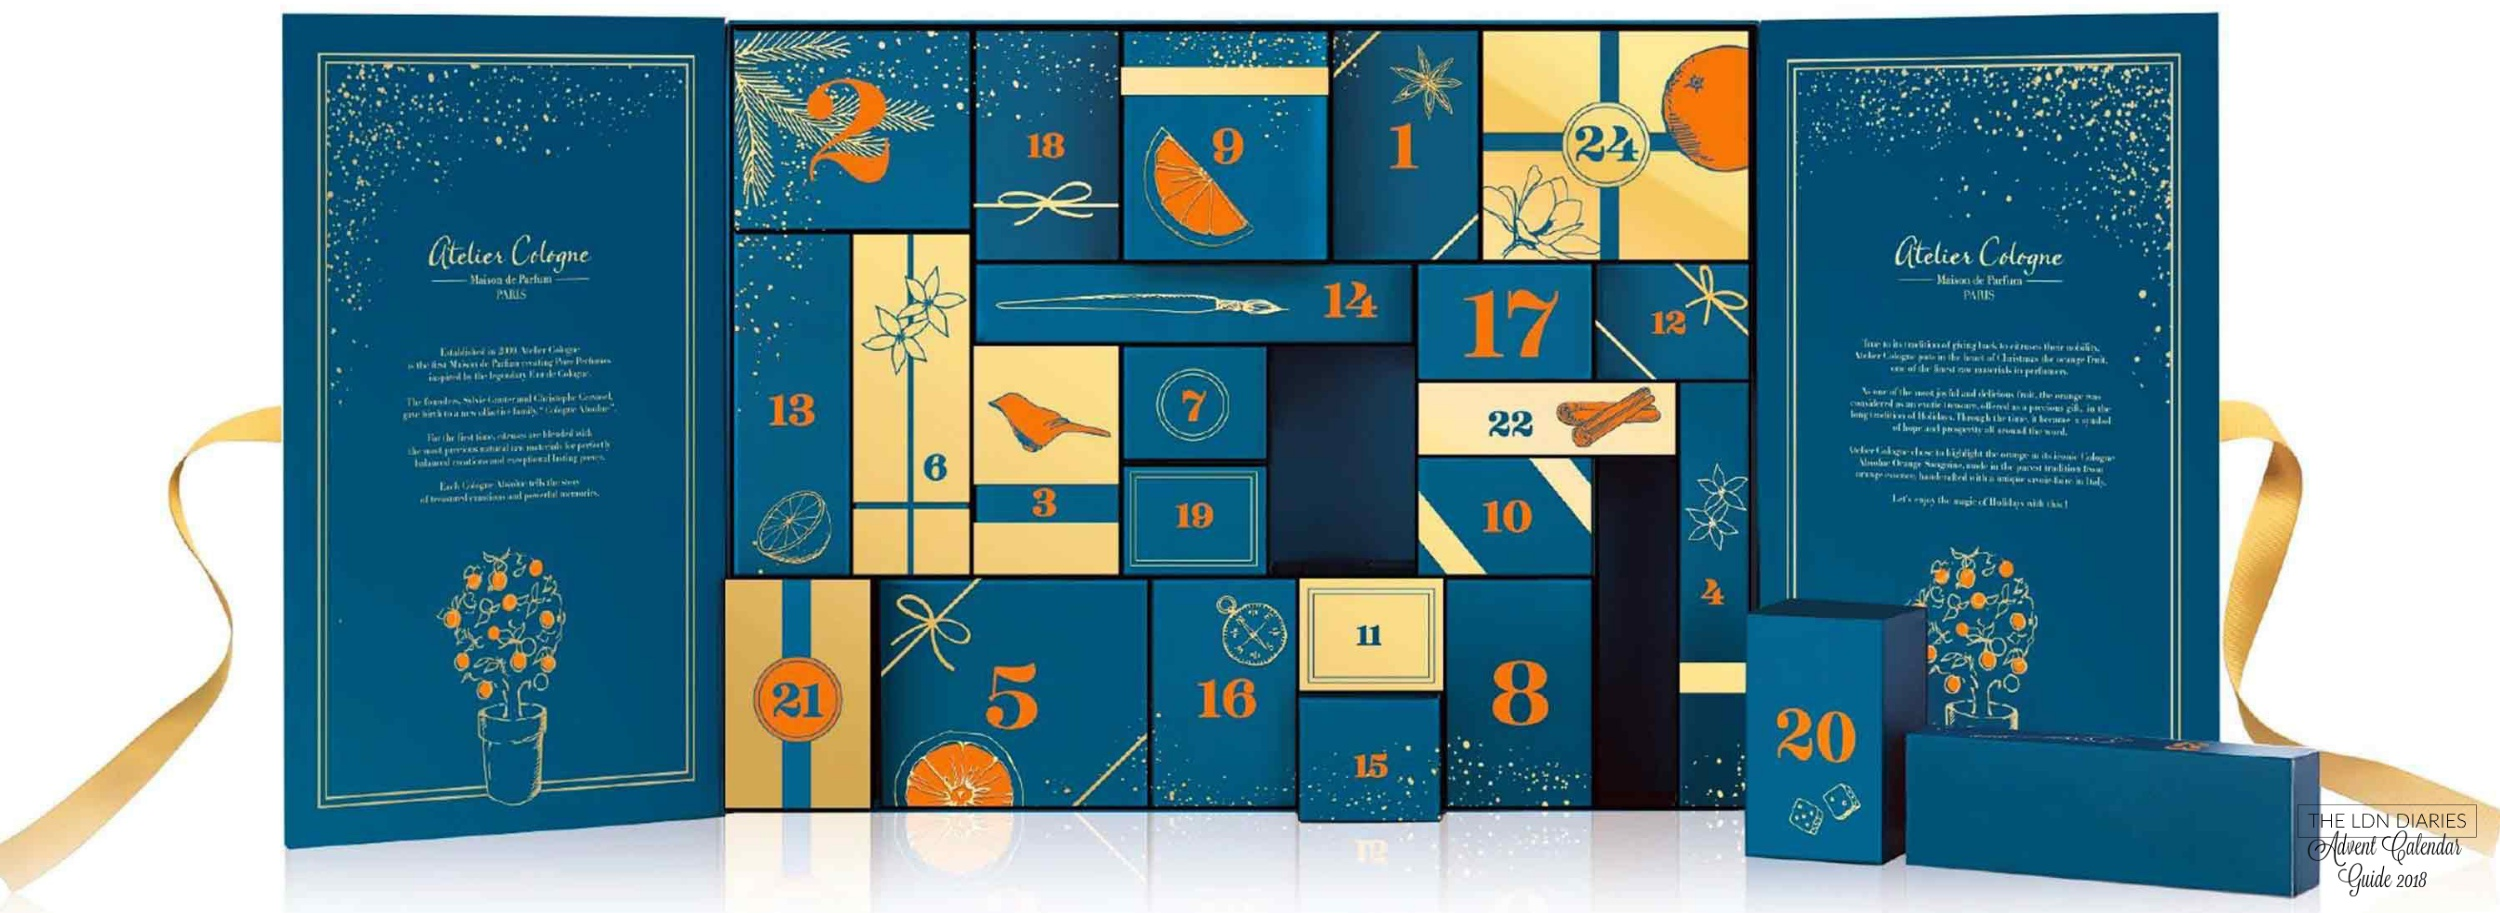 Atelier Cologne Advent Calendar 2018 - The LDN Diaries